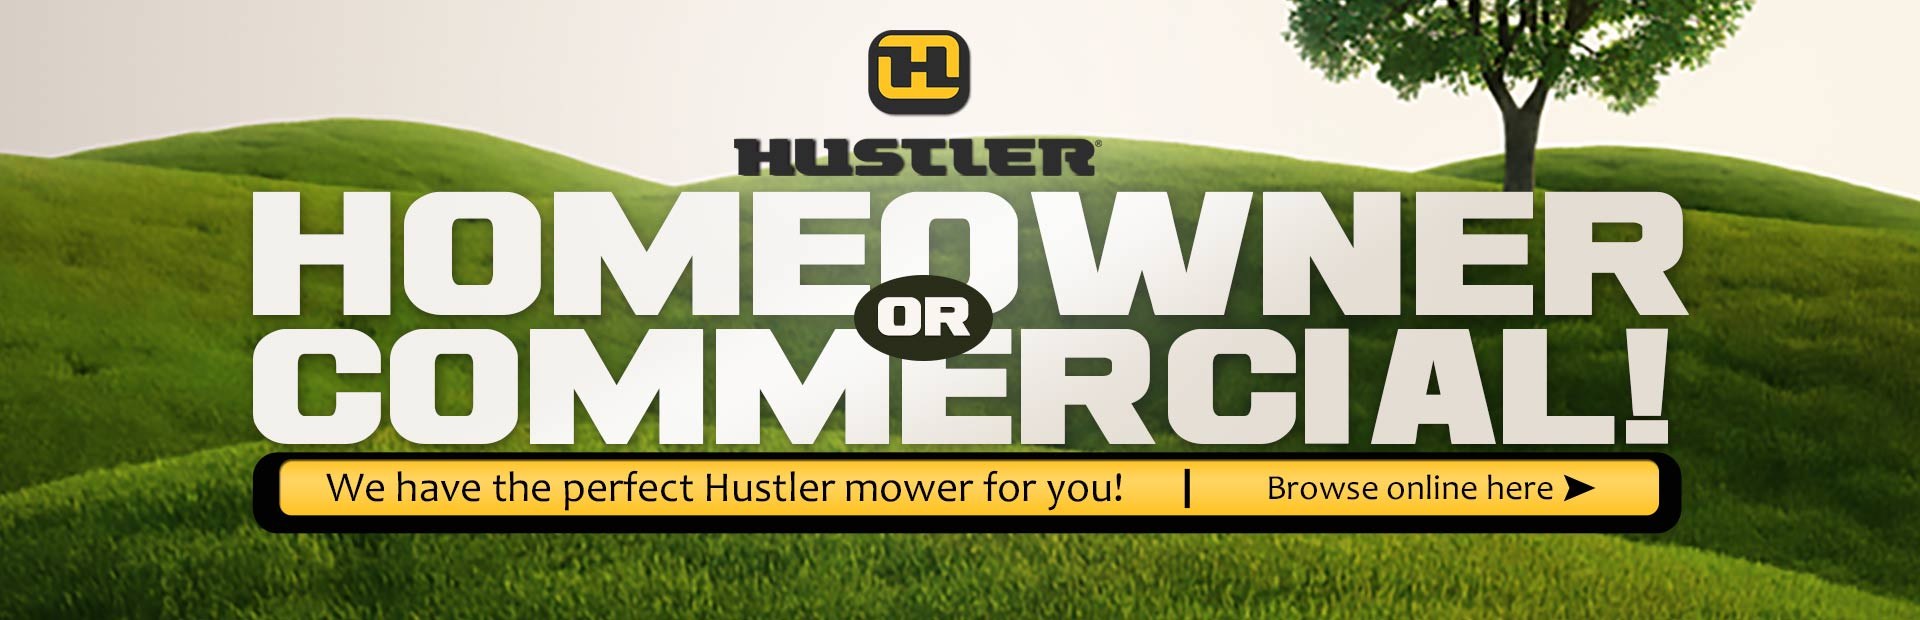 We have the perfect Hustler mower for you! Click here to browse the lawn mowers online.